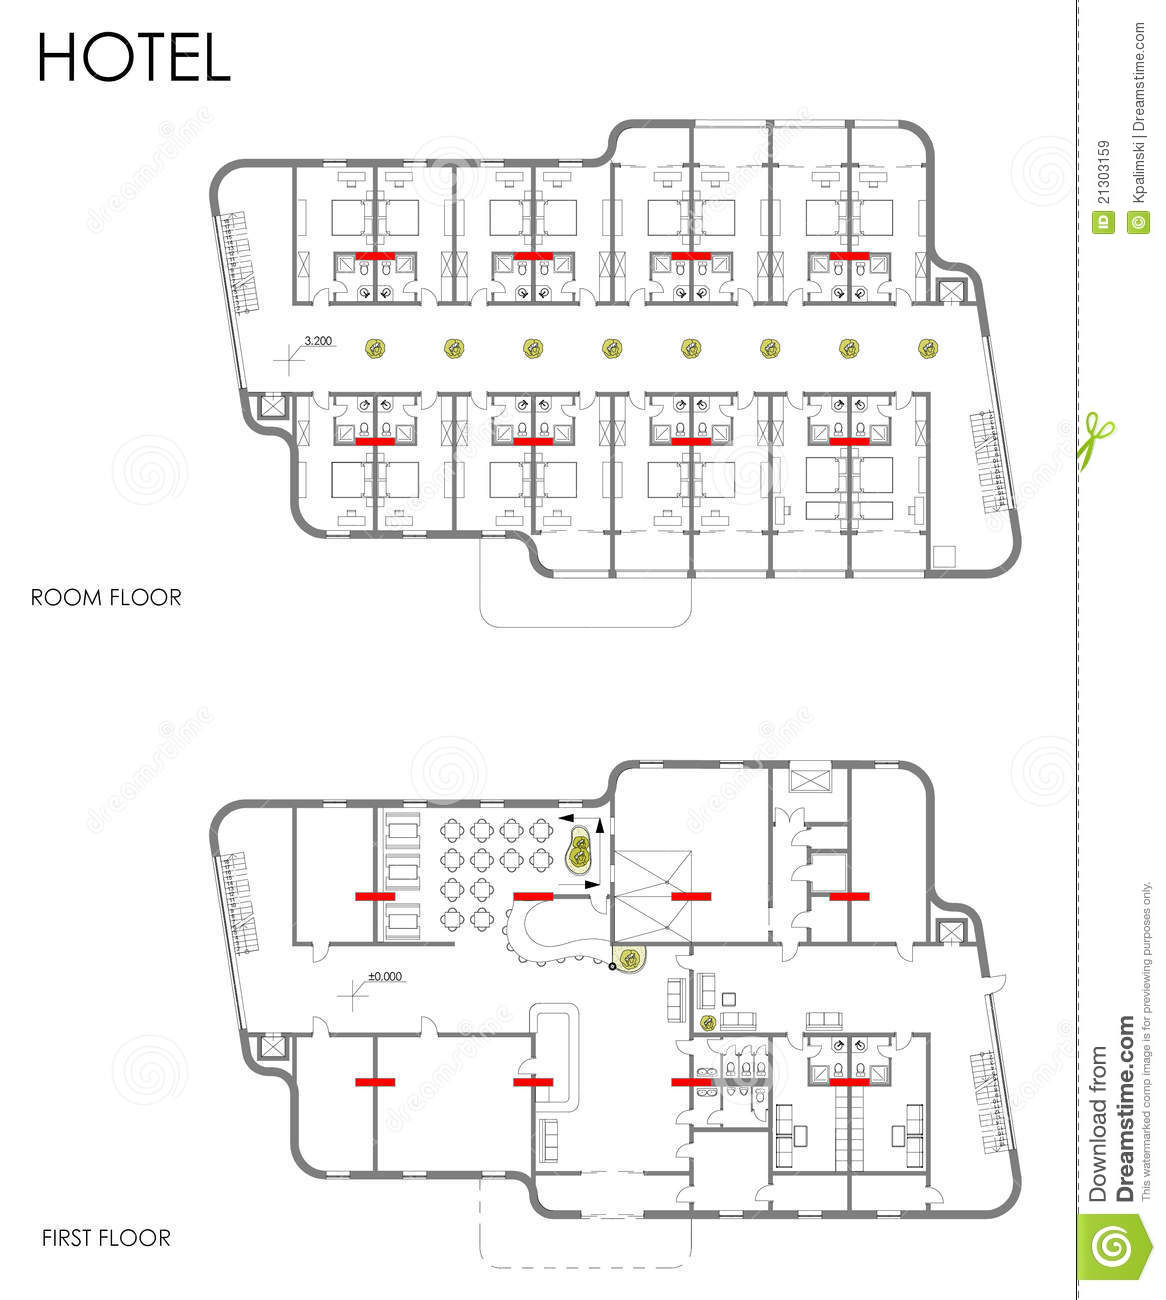 Royalty Free Stock Images Hotel Drawing Plan Image21303159 on bedroom house blueprint